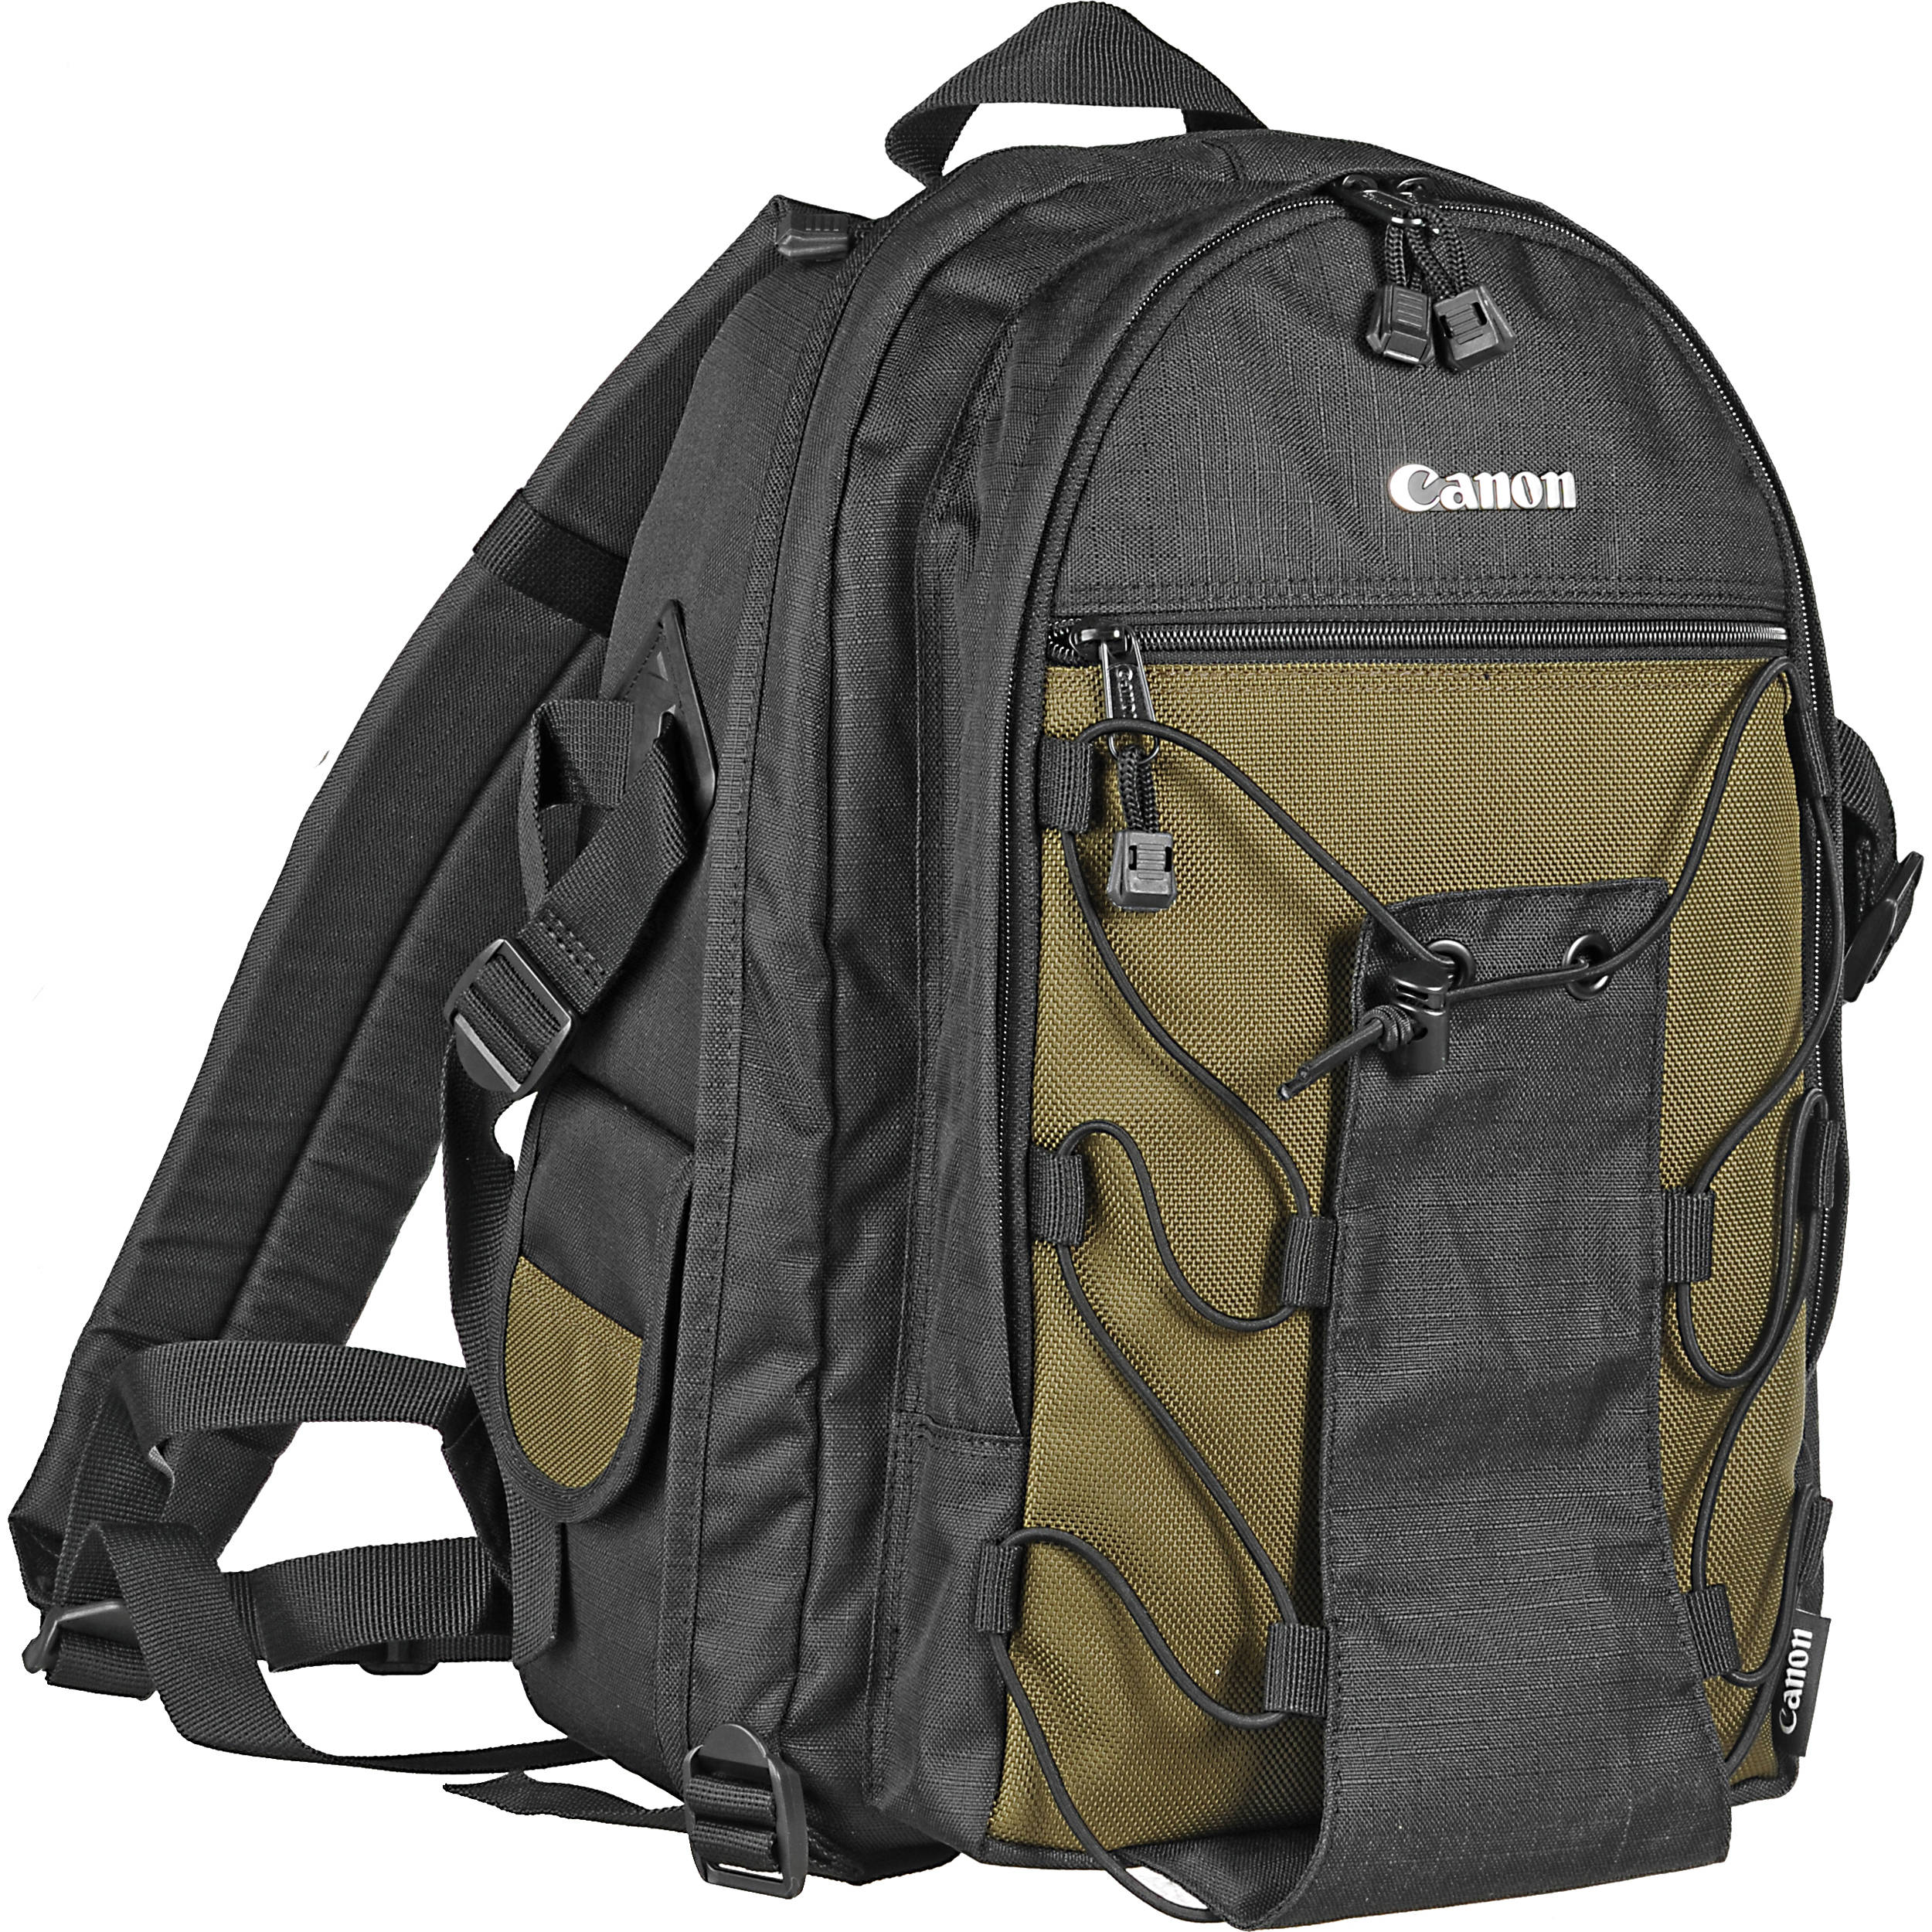 Canon Deluxe Backpack 200 EG 6229A003 B&H Photo Video